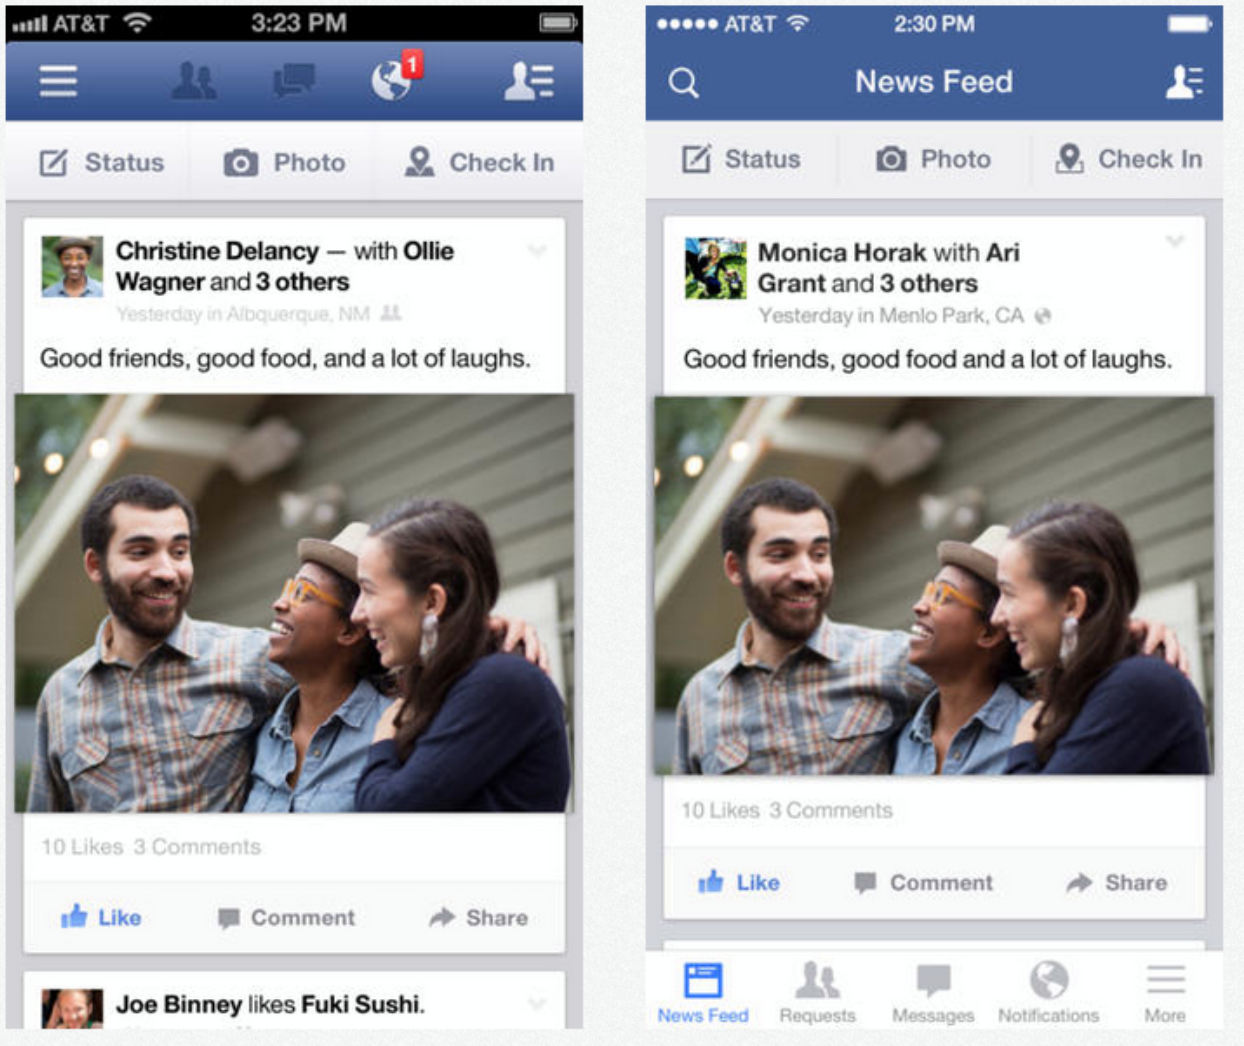 facebook mobile app redesign side by side comparison that shows a change from a hamburger menu icon to a bottom nav bar